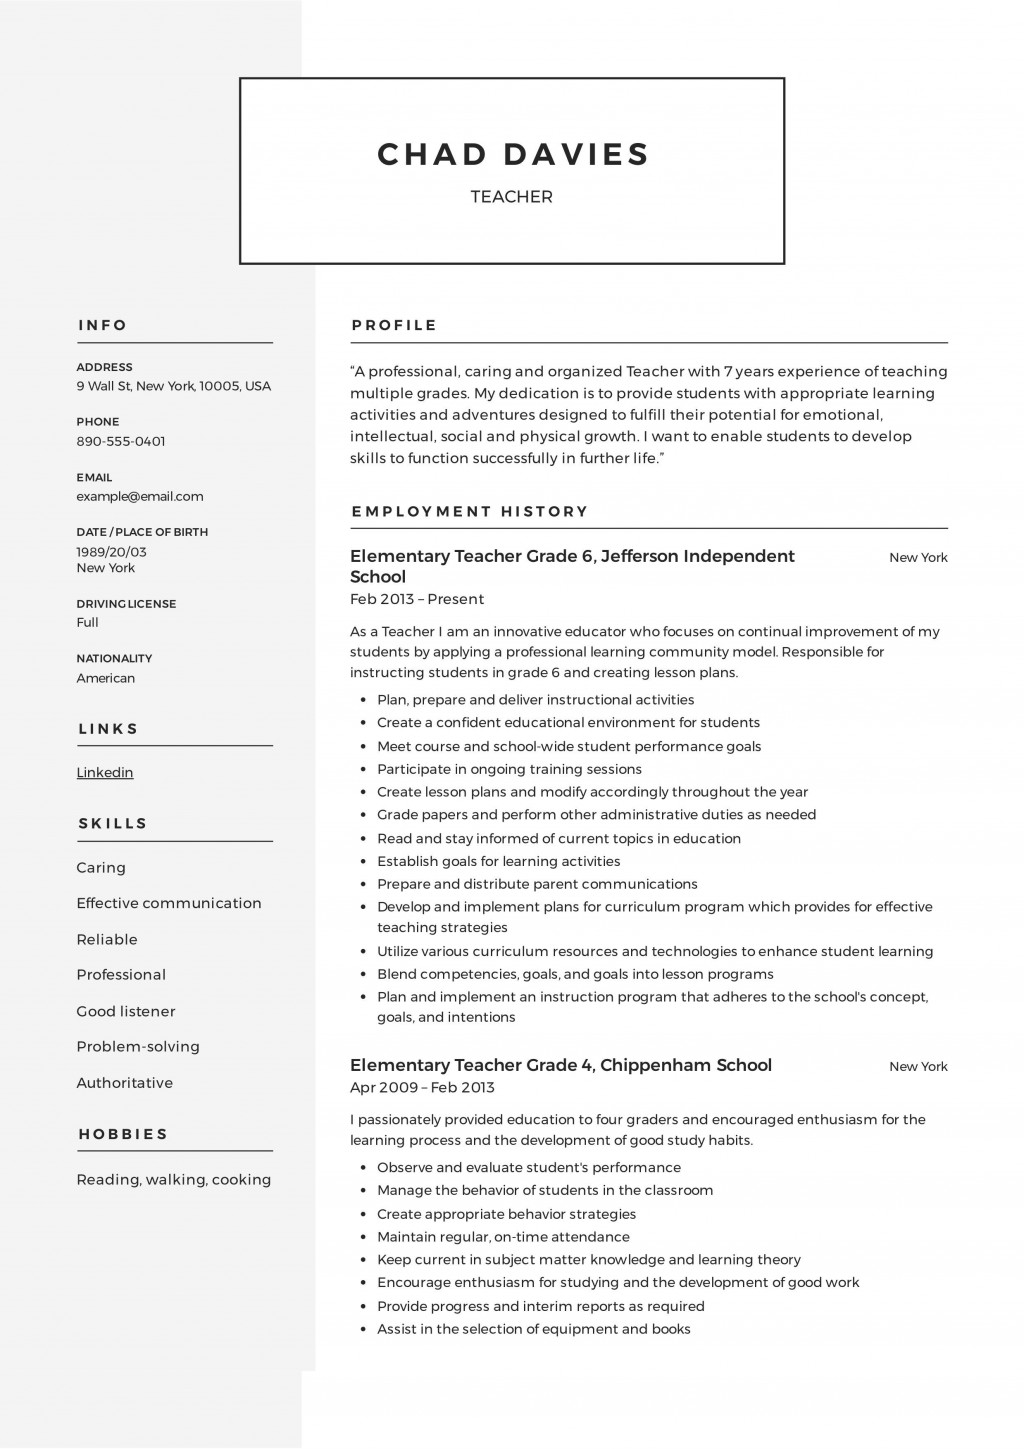 002 Marvelou Resume Example For Teaching Concept  Sample Position In College Teacher School Principal IndiaLarge